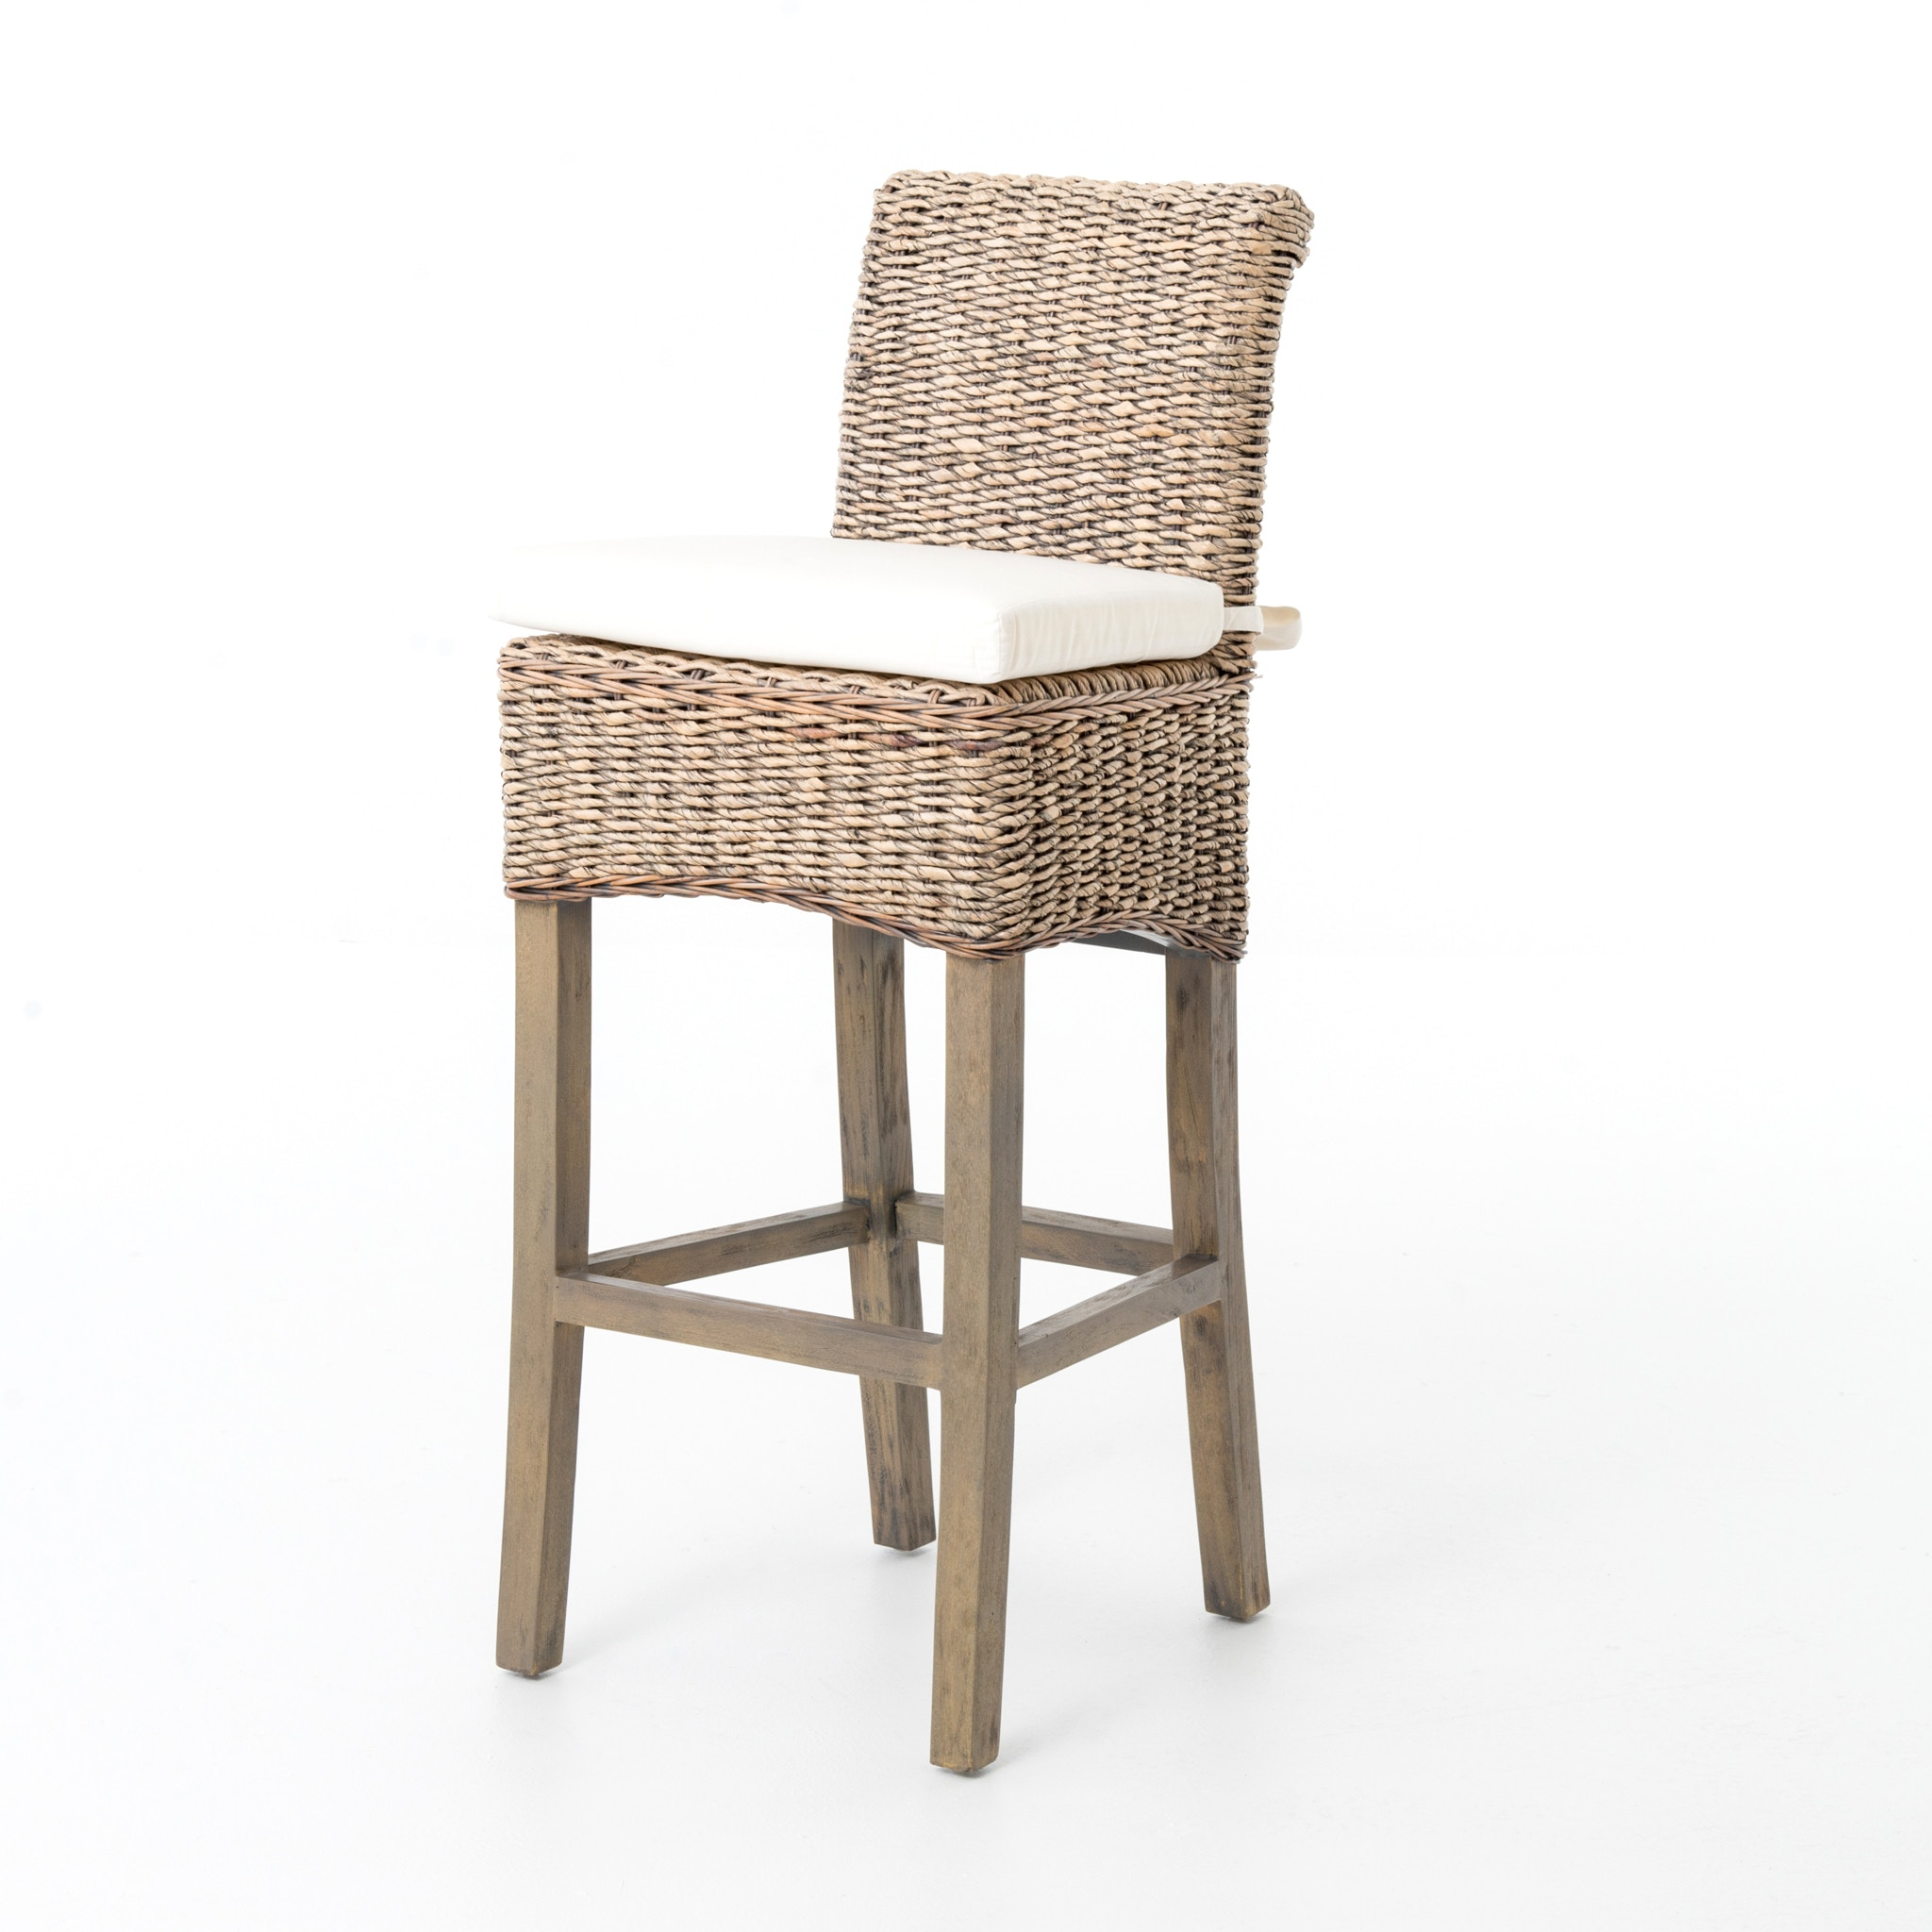 banana leaf dining room chairs at home four hands furniture jchr b1bsg gry